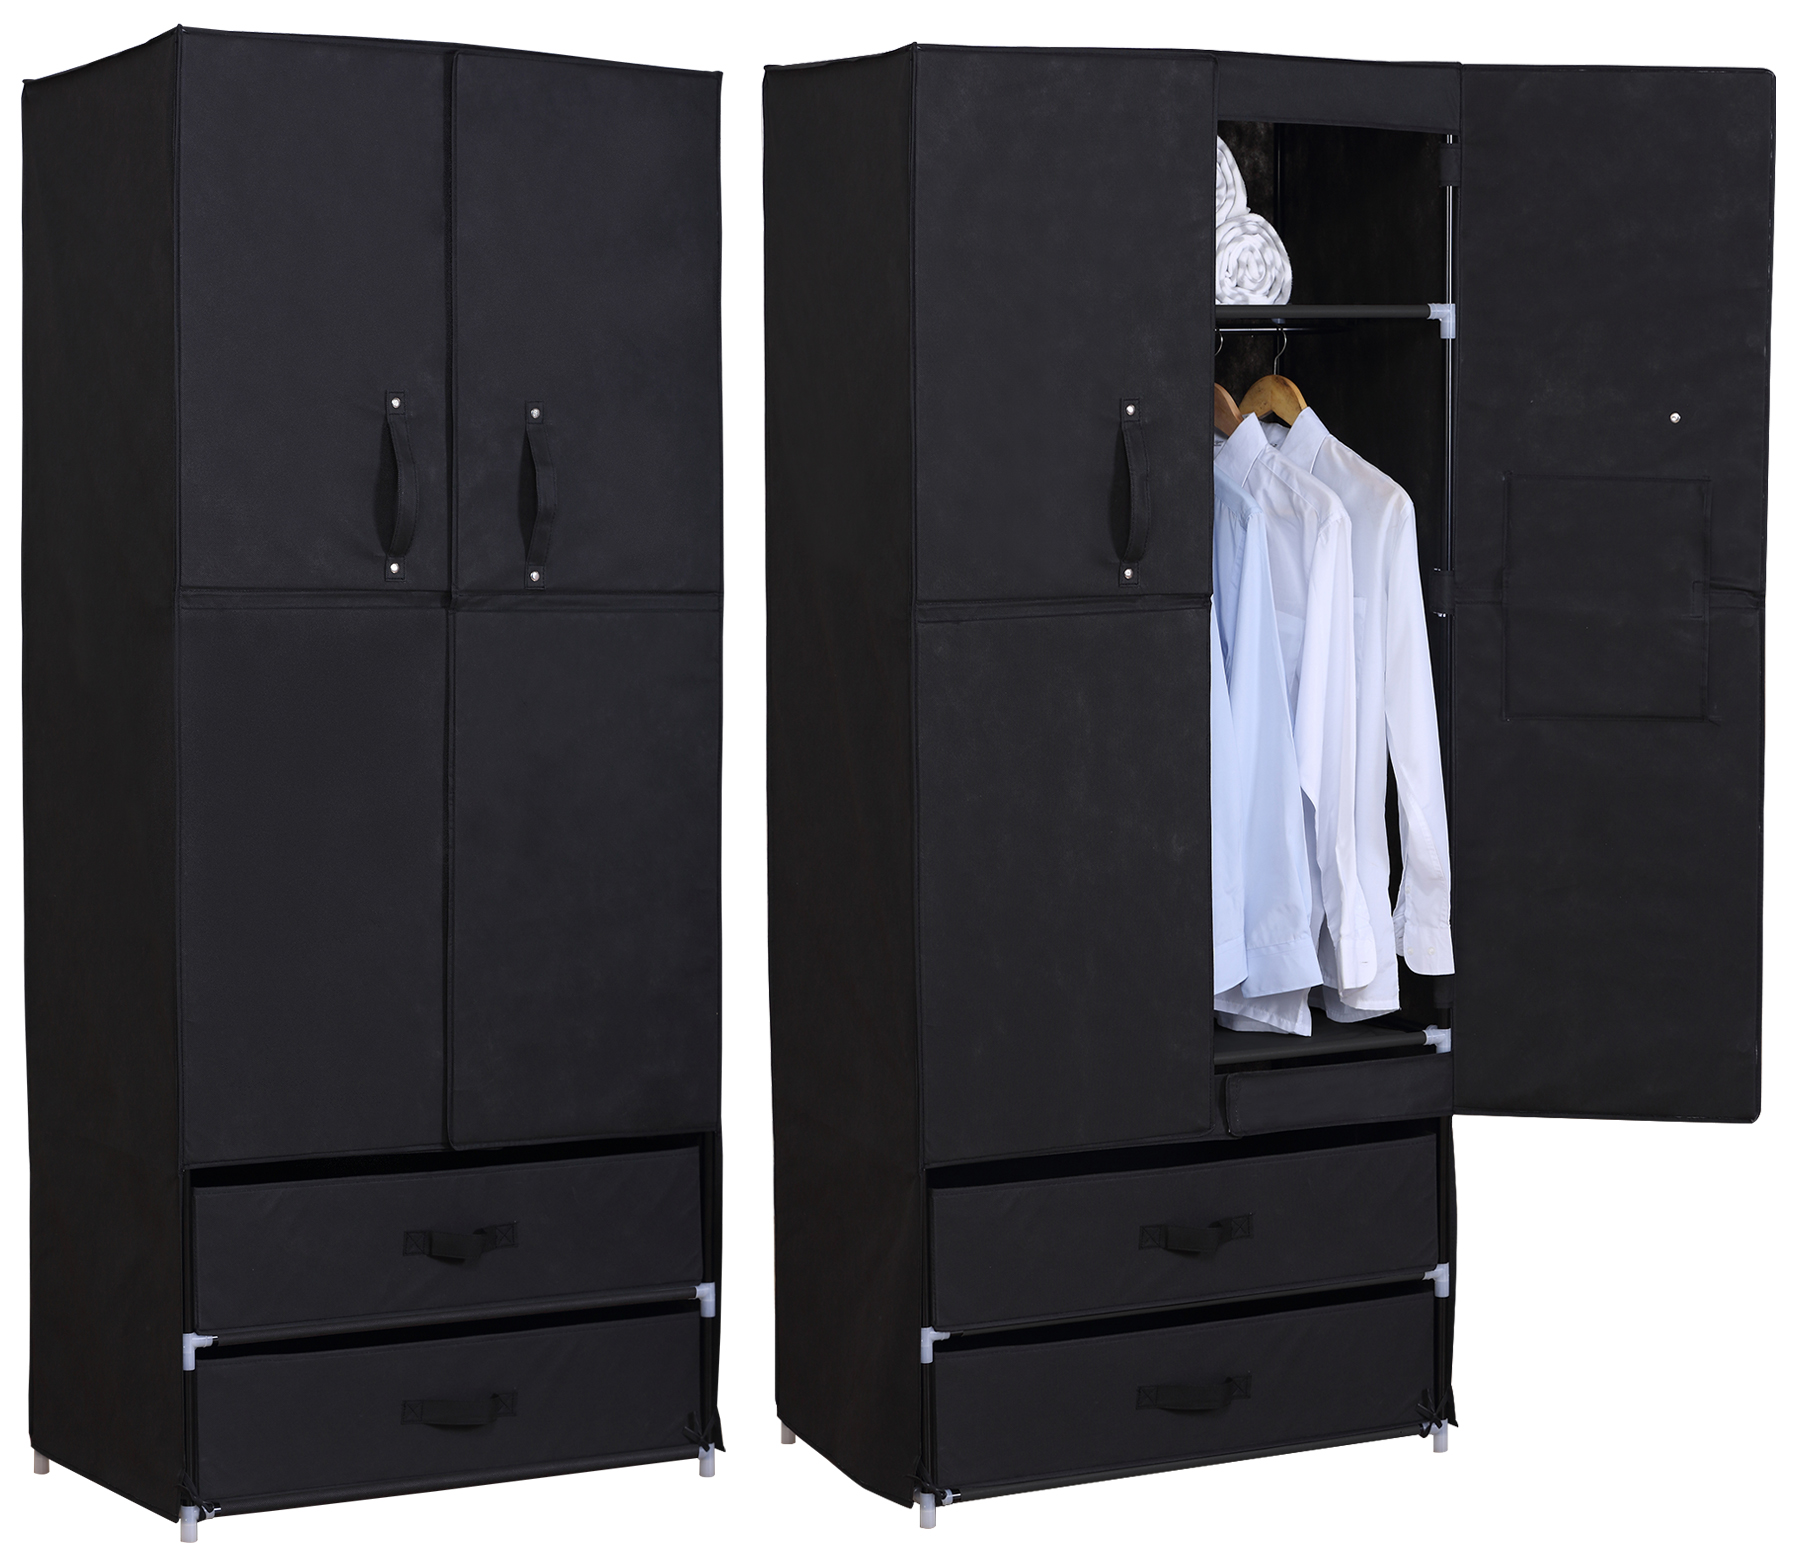 kleiderschrank schuhschrank stoff textil mit fl gelt r faltschrank 281 ebay. Black Bedroom Furniture Sets. Home Design Ideas